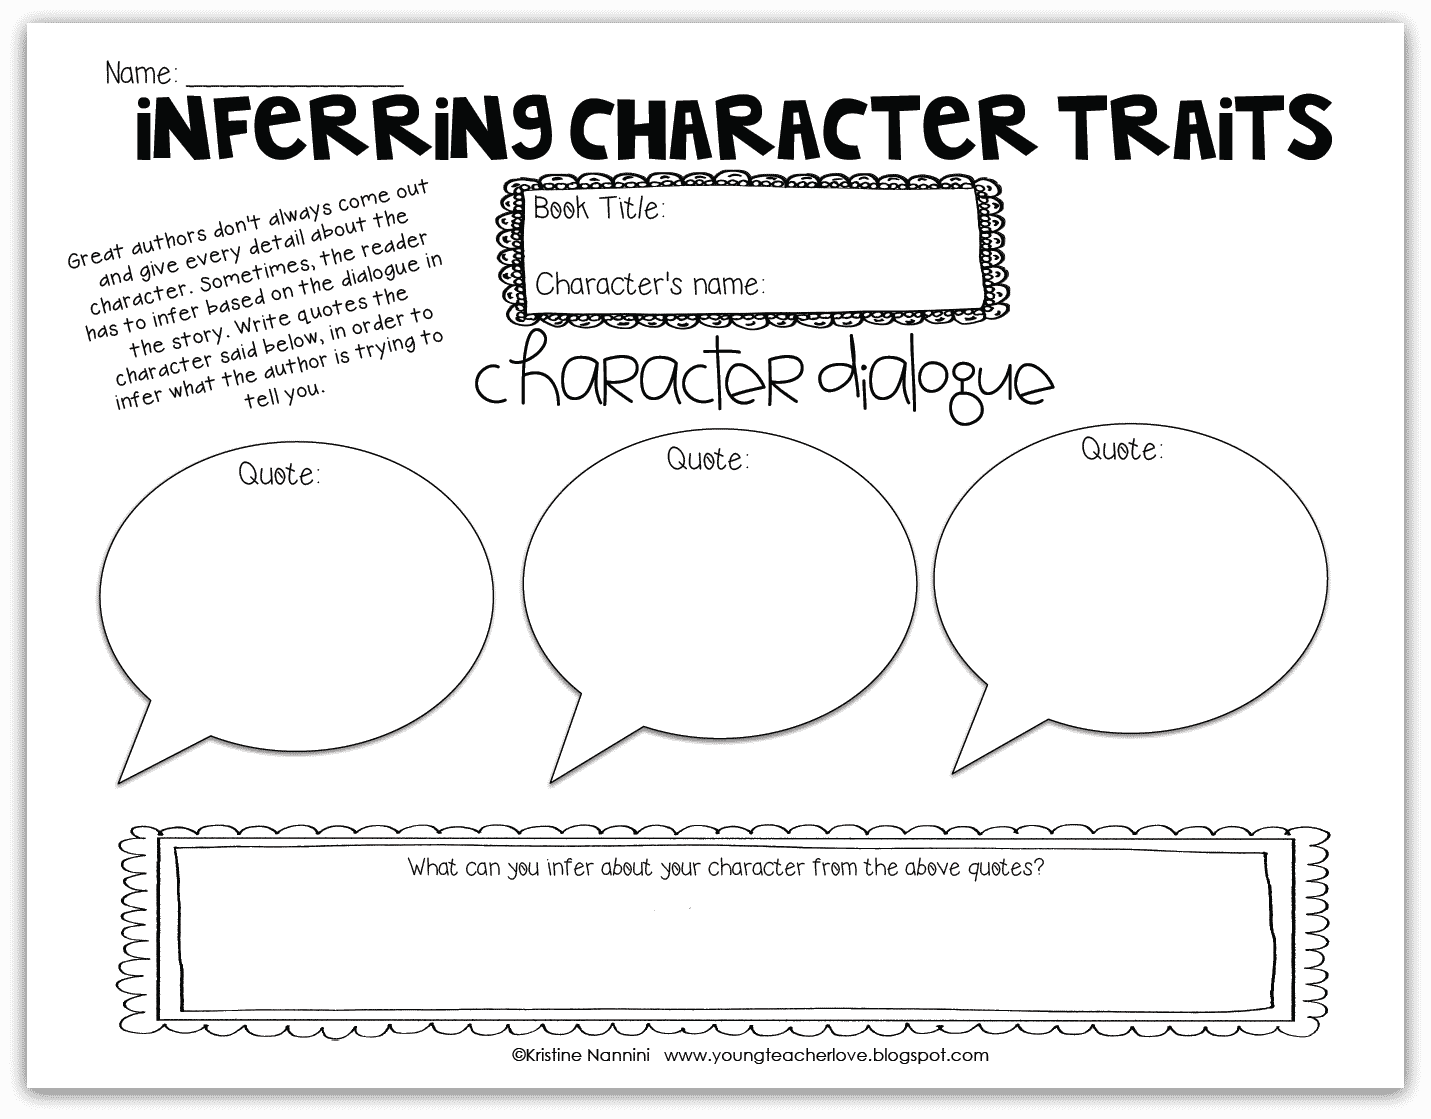 Inferring Character Traits Freebie